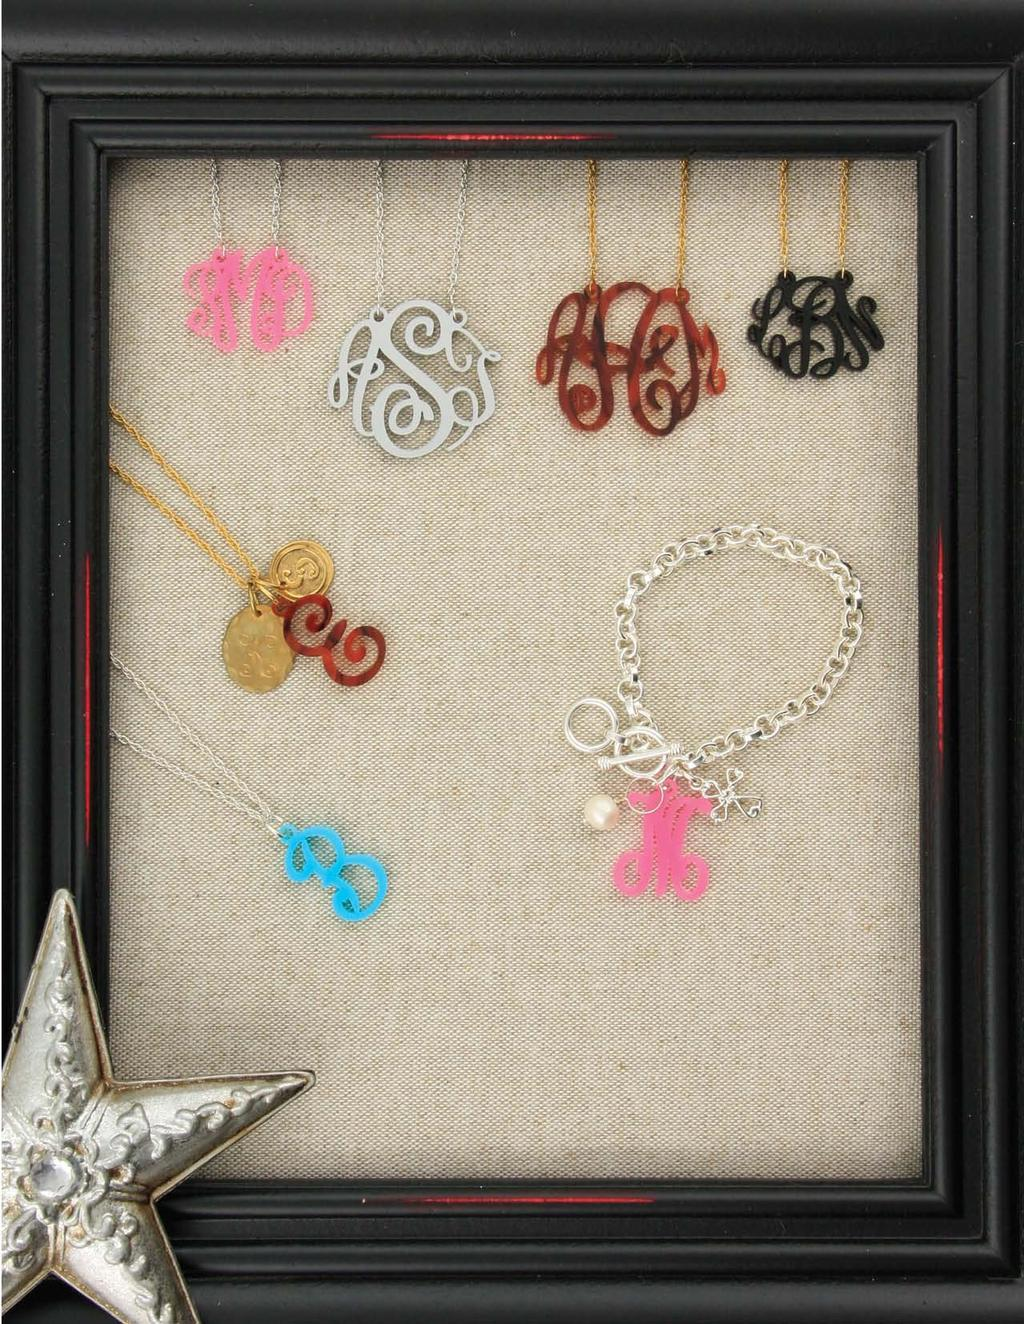 c. d. d. c. e. Acrylic Filigree Monograms Add charms to create a unique initial necklace! JB0216 $24 7 1/2-8 JC0007 $7 JC0054 $12 e. e. Remove the single initial from the chain and place on a bracelet.